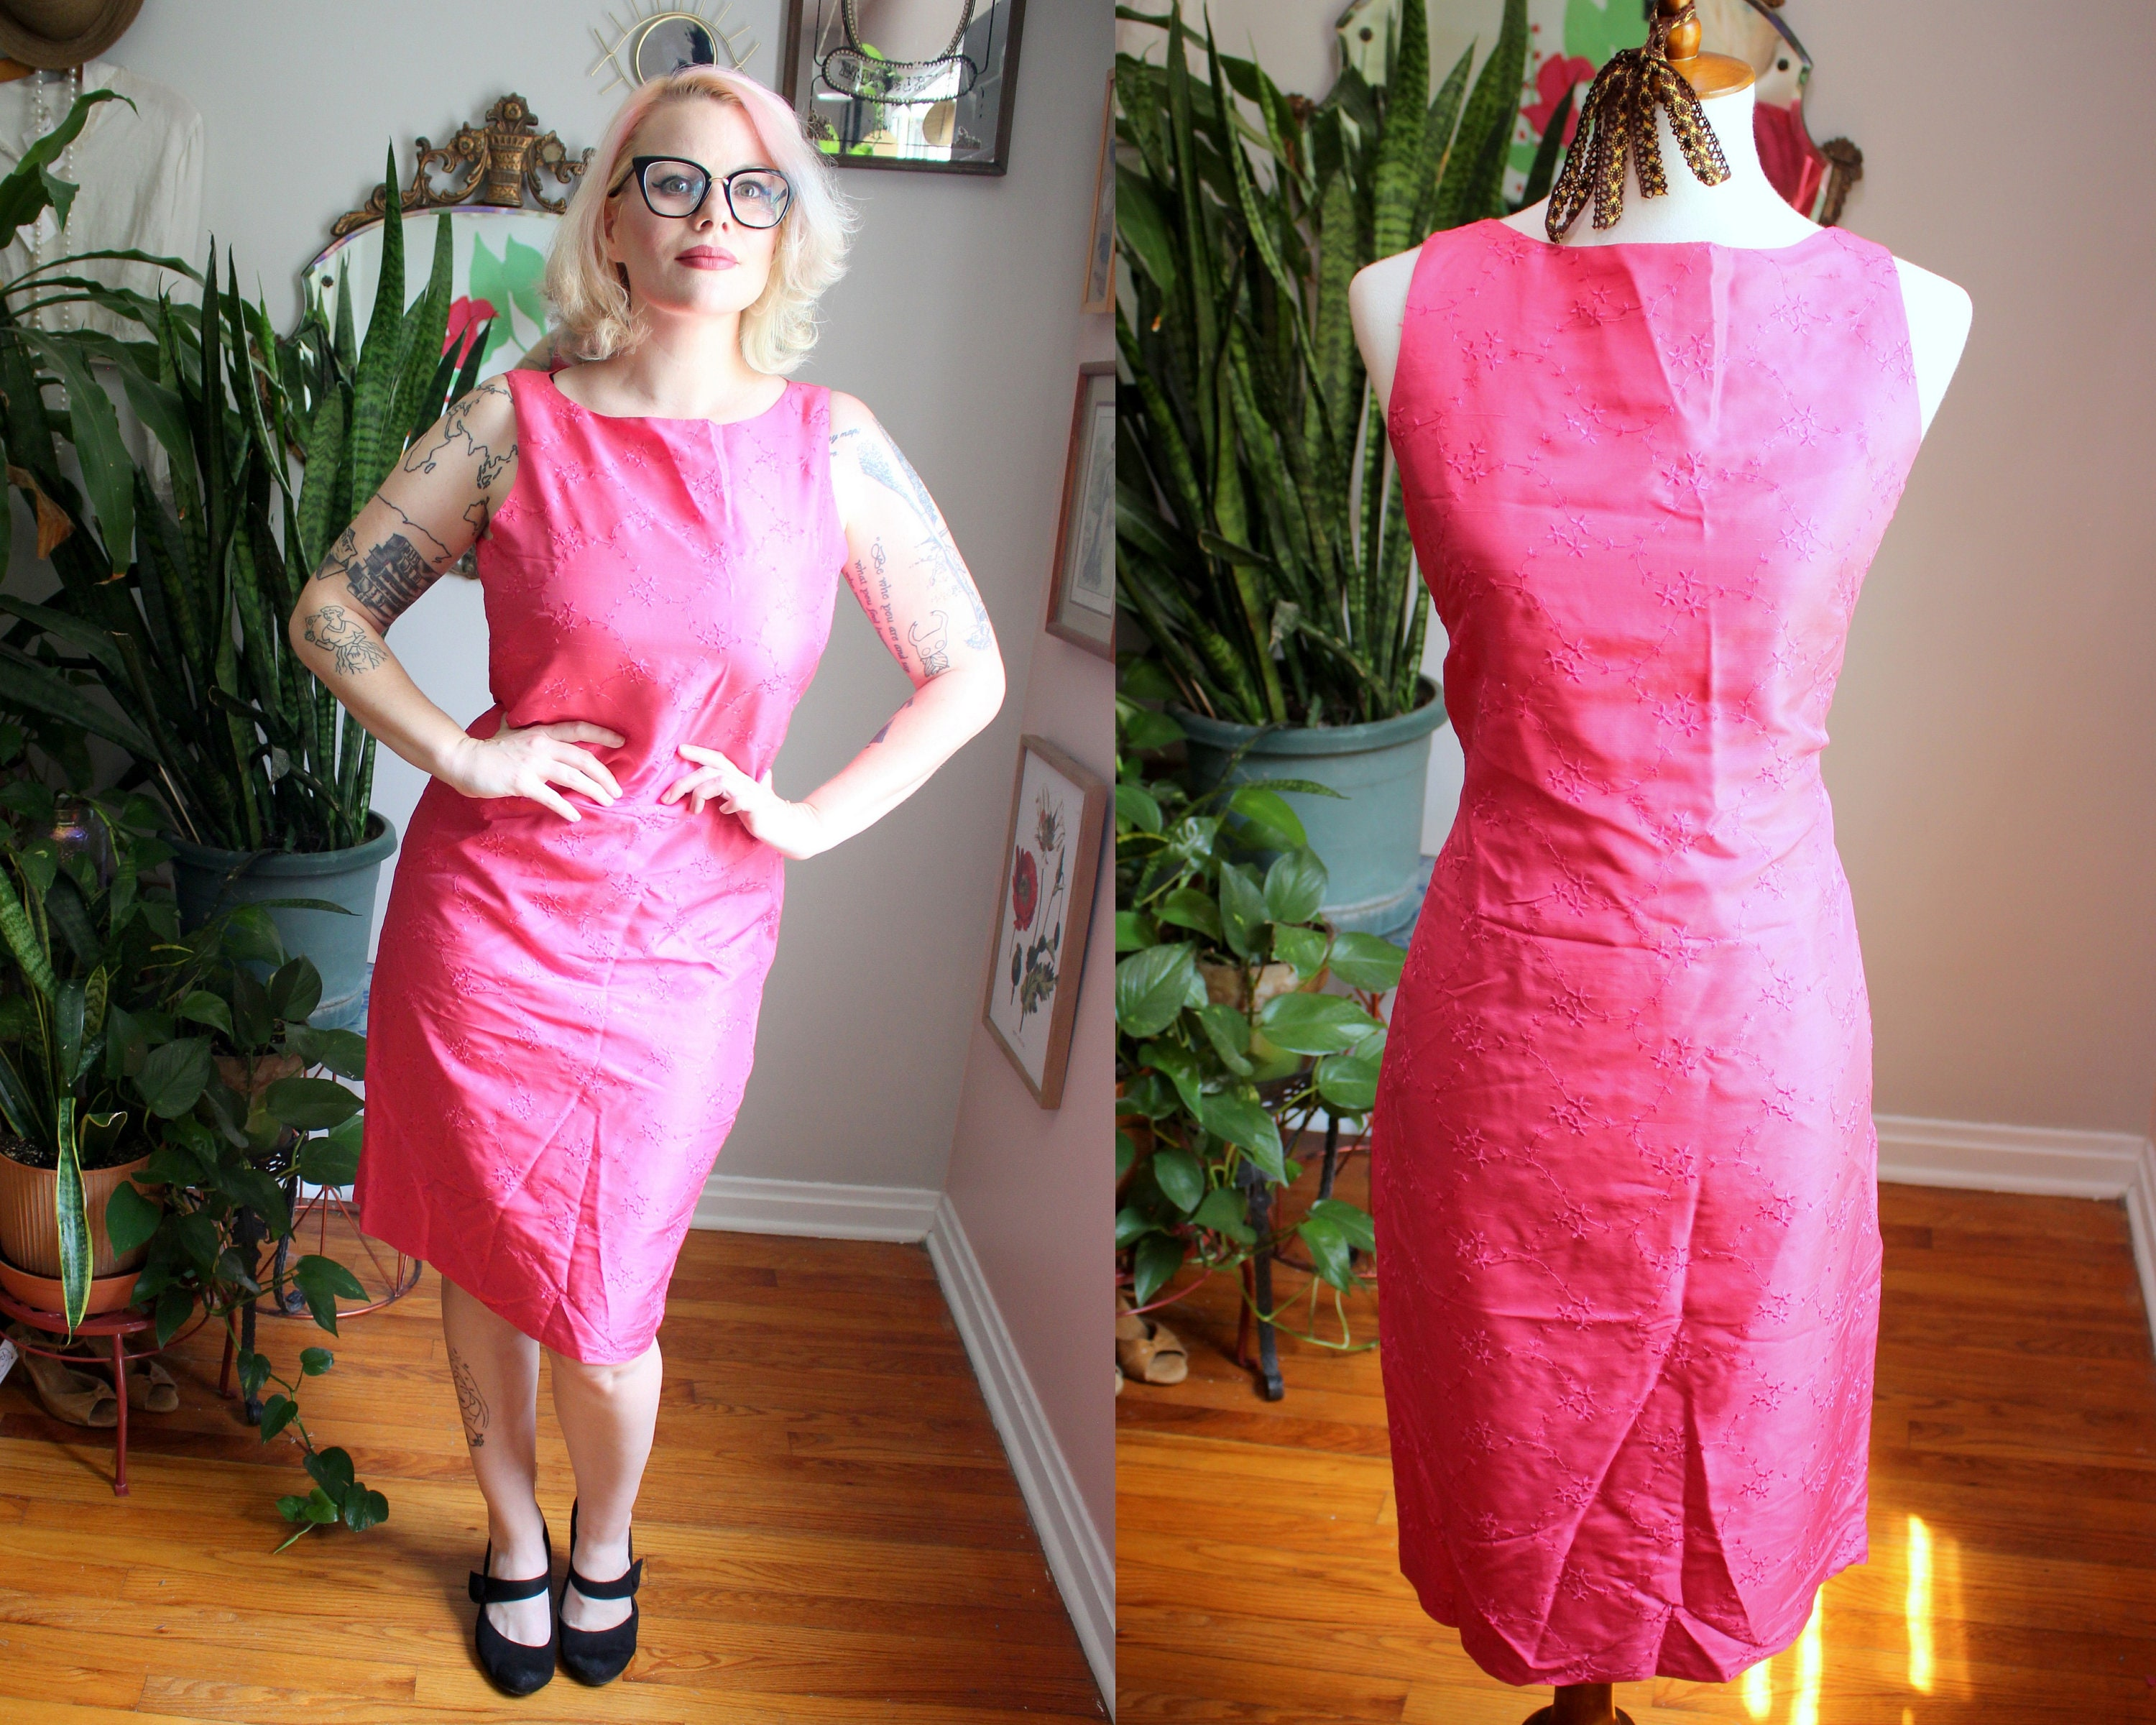 80s Dresses   Casual to Party Dresses Taryn Dress  Vintage 1980s - 1990s Bubblegum Pink Pure Silk Sheath With Floral Embroidery By Evan-Picone M-L $0.00 AT vintagedancer.com